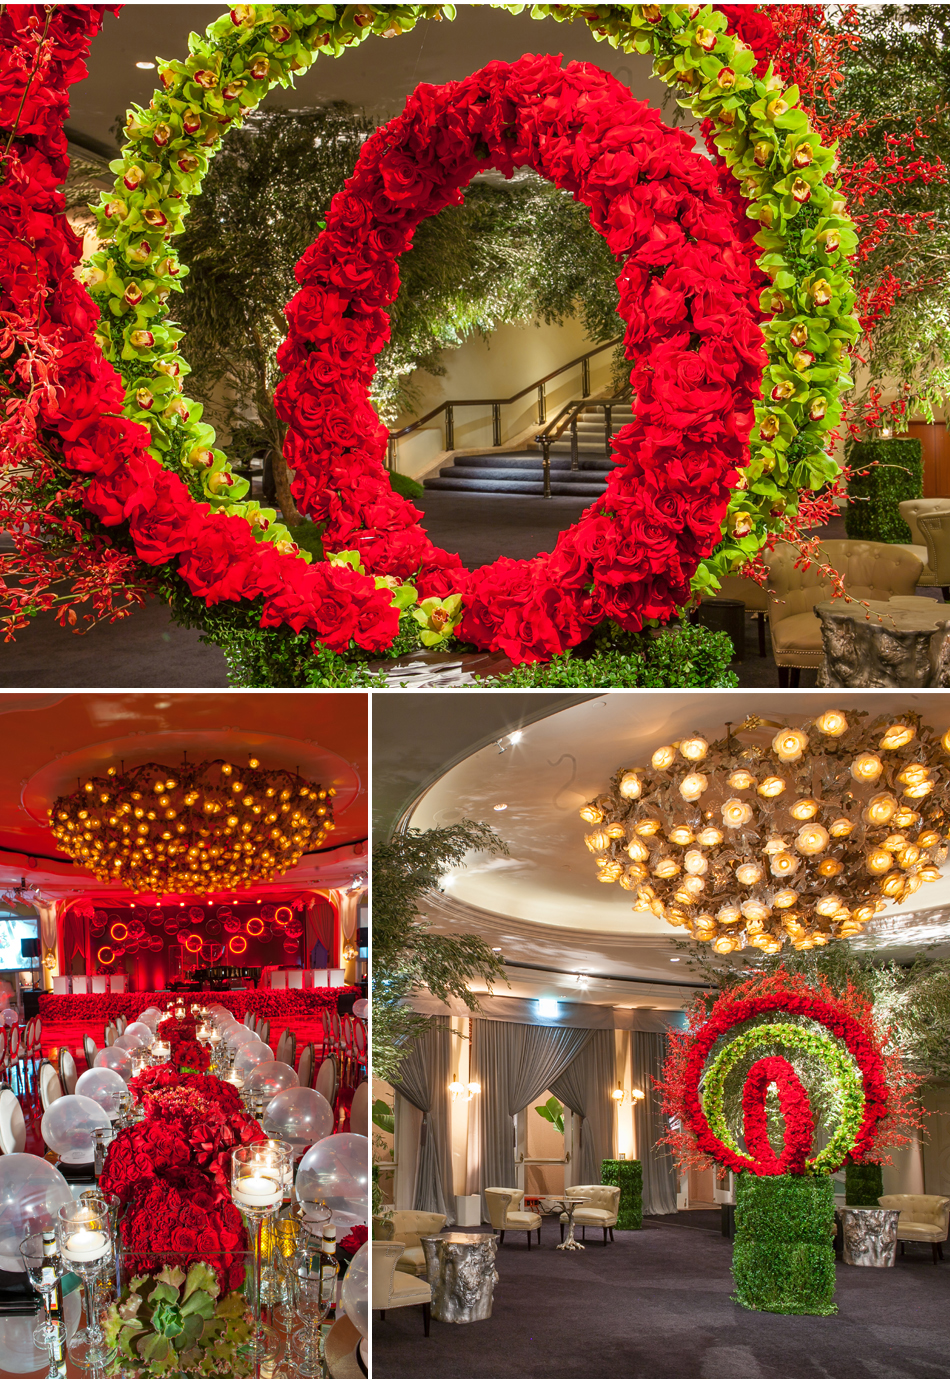 internationaleventcompany.com | International Event Company Los Angeles Wedding Planner and Designer | Birthday Parties at The Beverly Hills Hotel | Luxury Event Planners in Southern California _.jpg